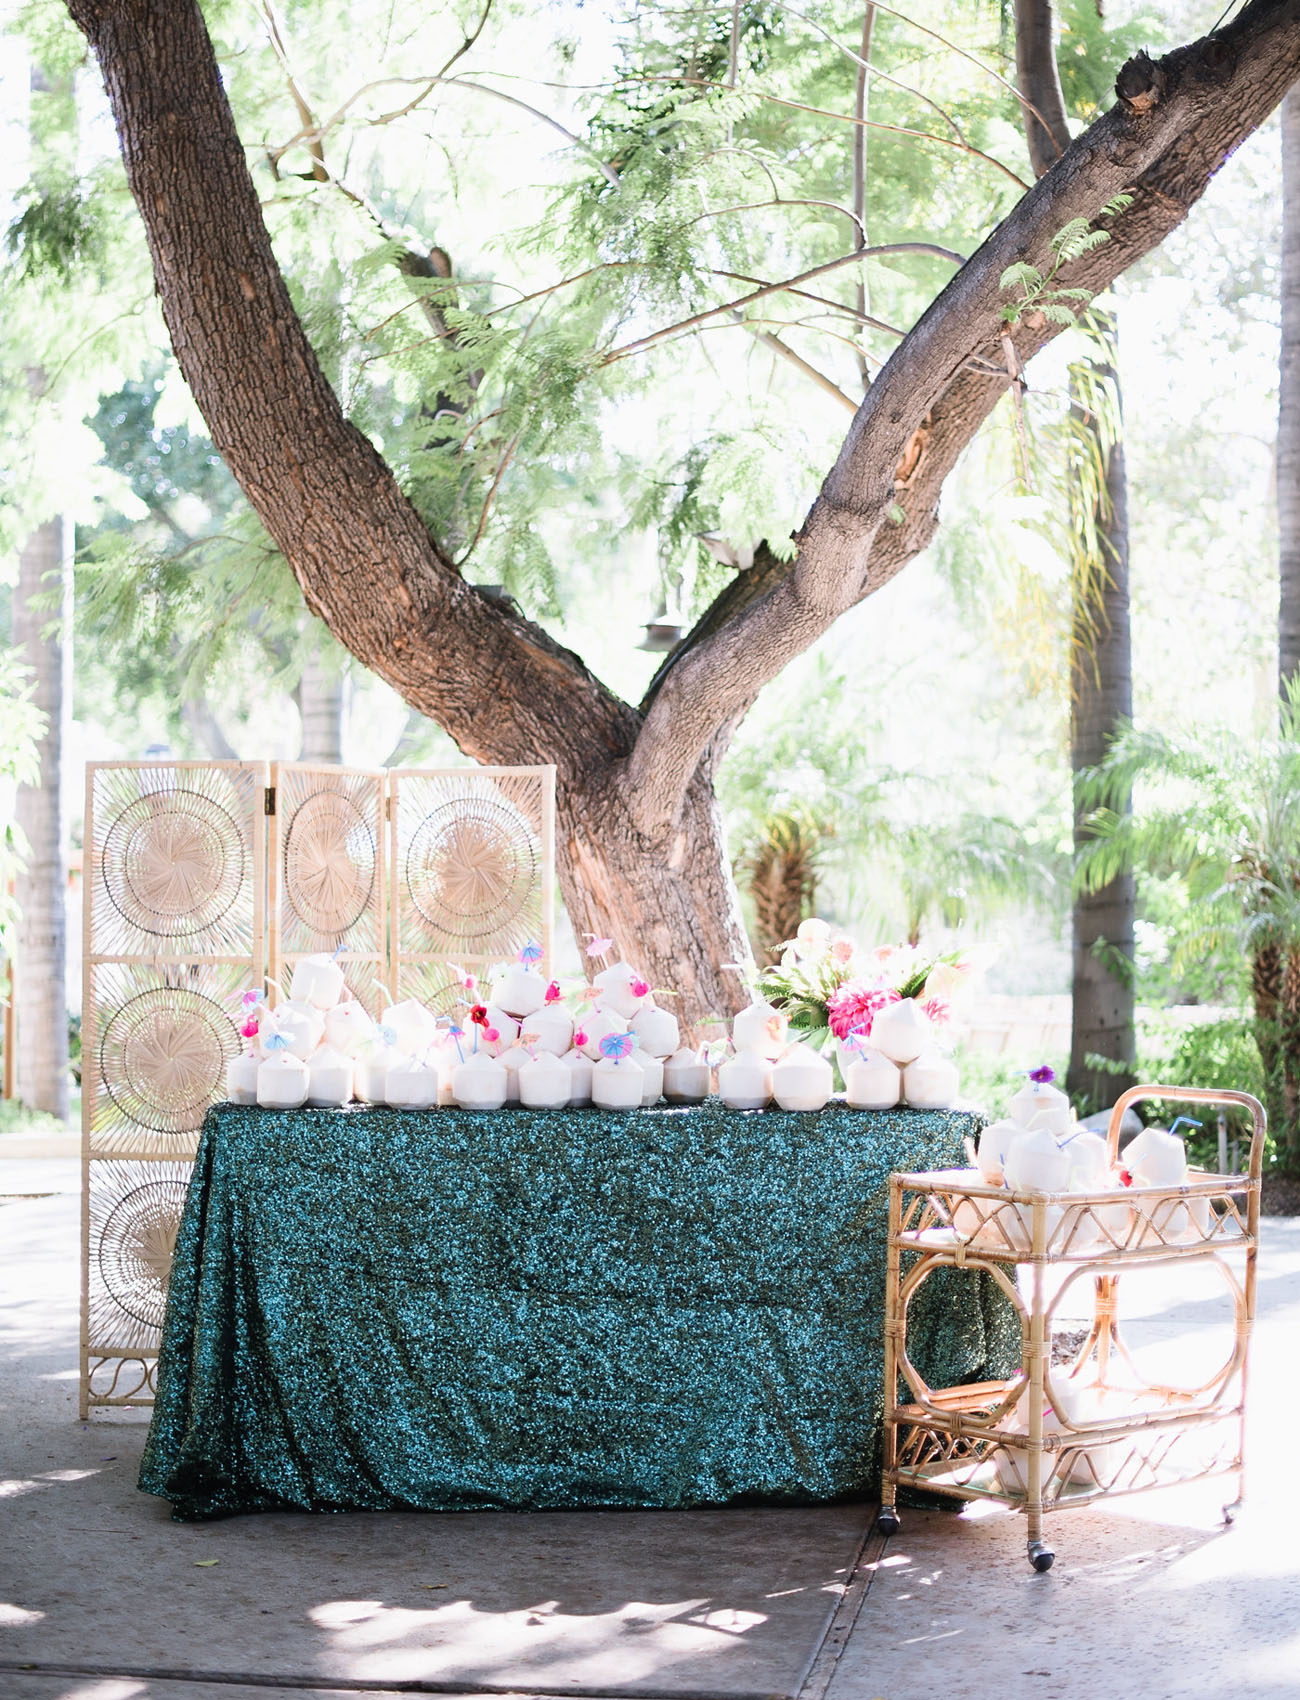 shaved coconuts with cocktail umbrellas on sequin covered table